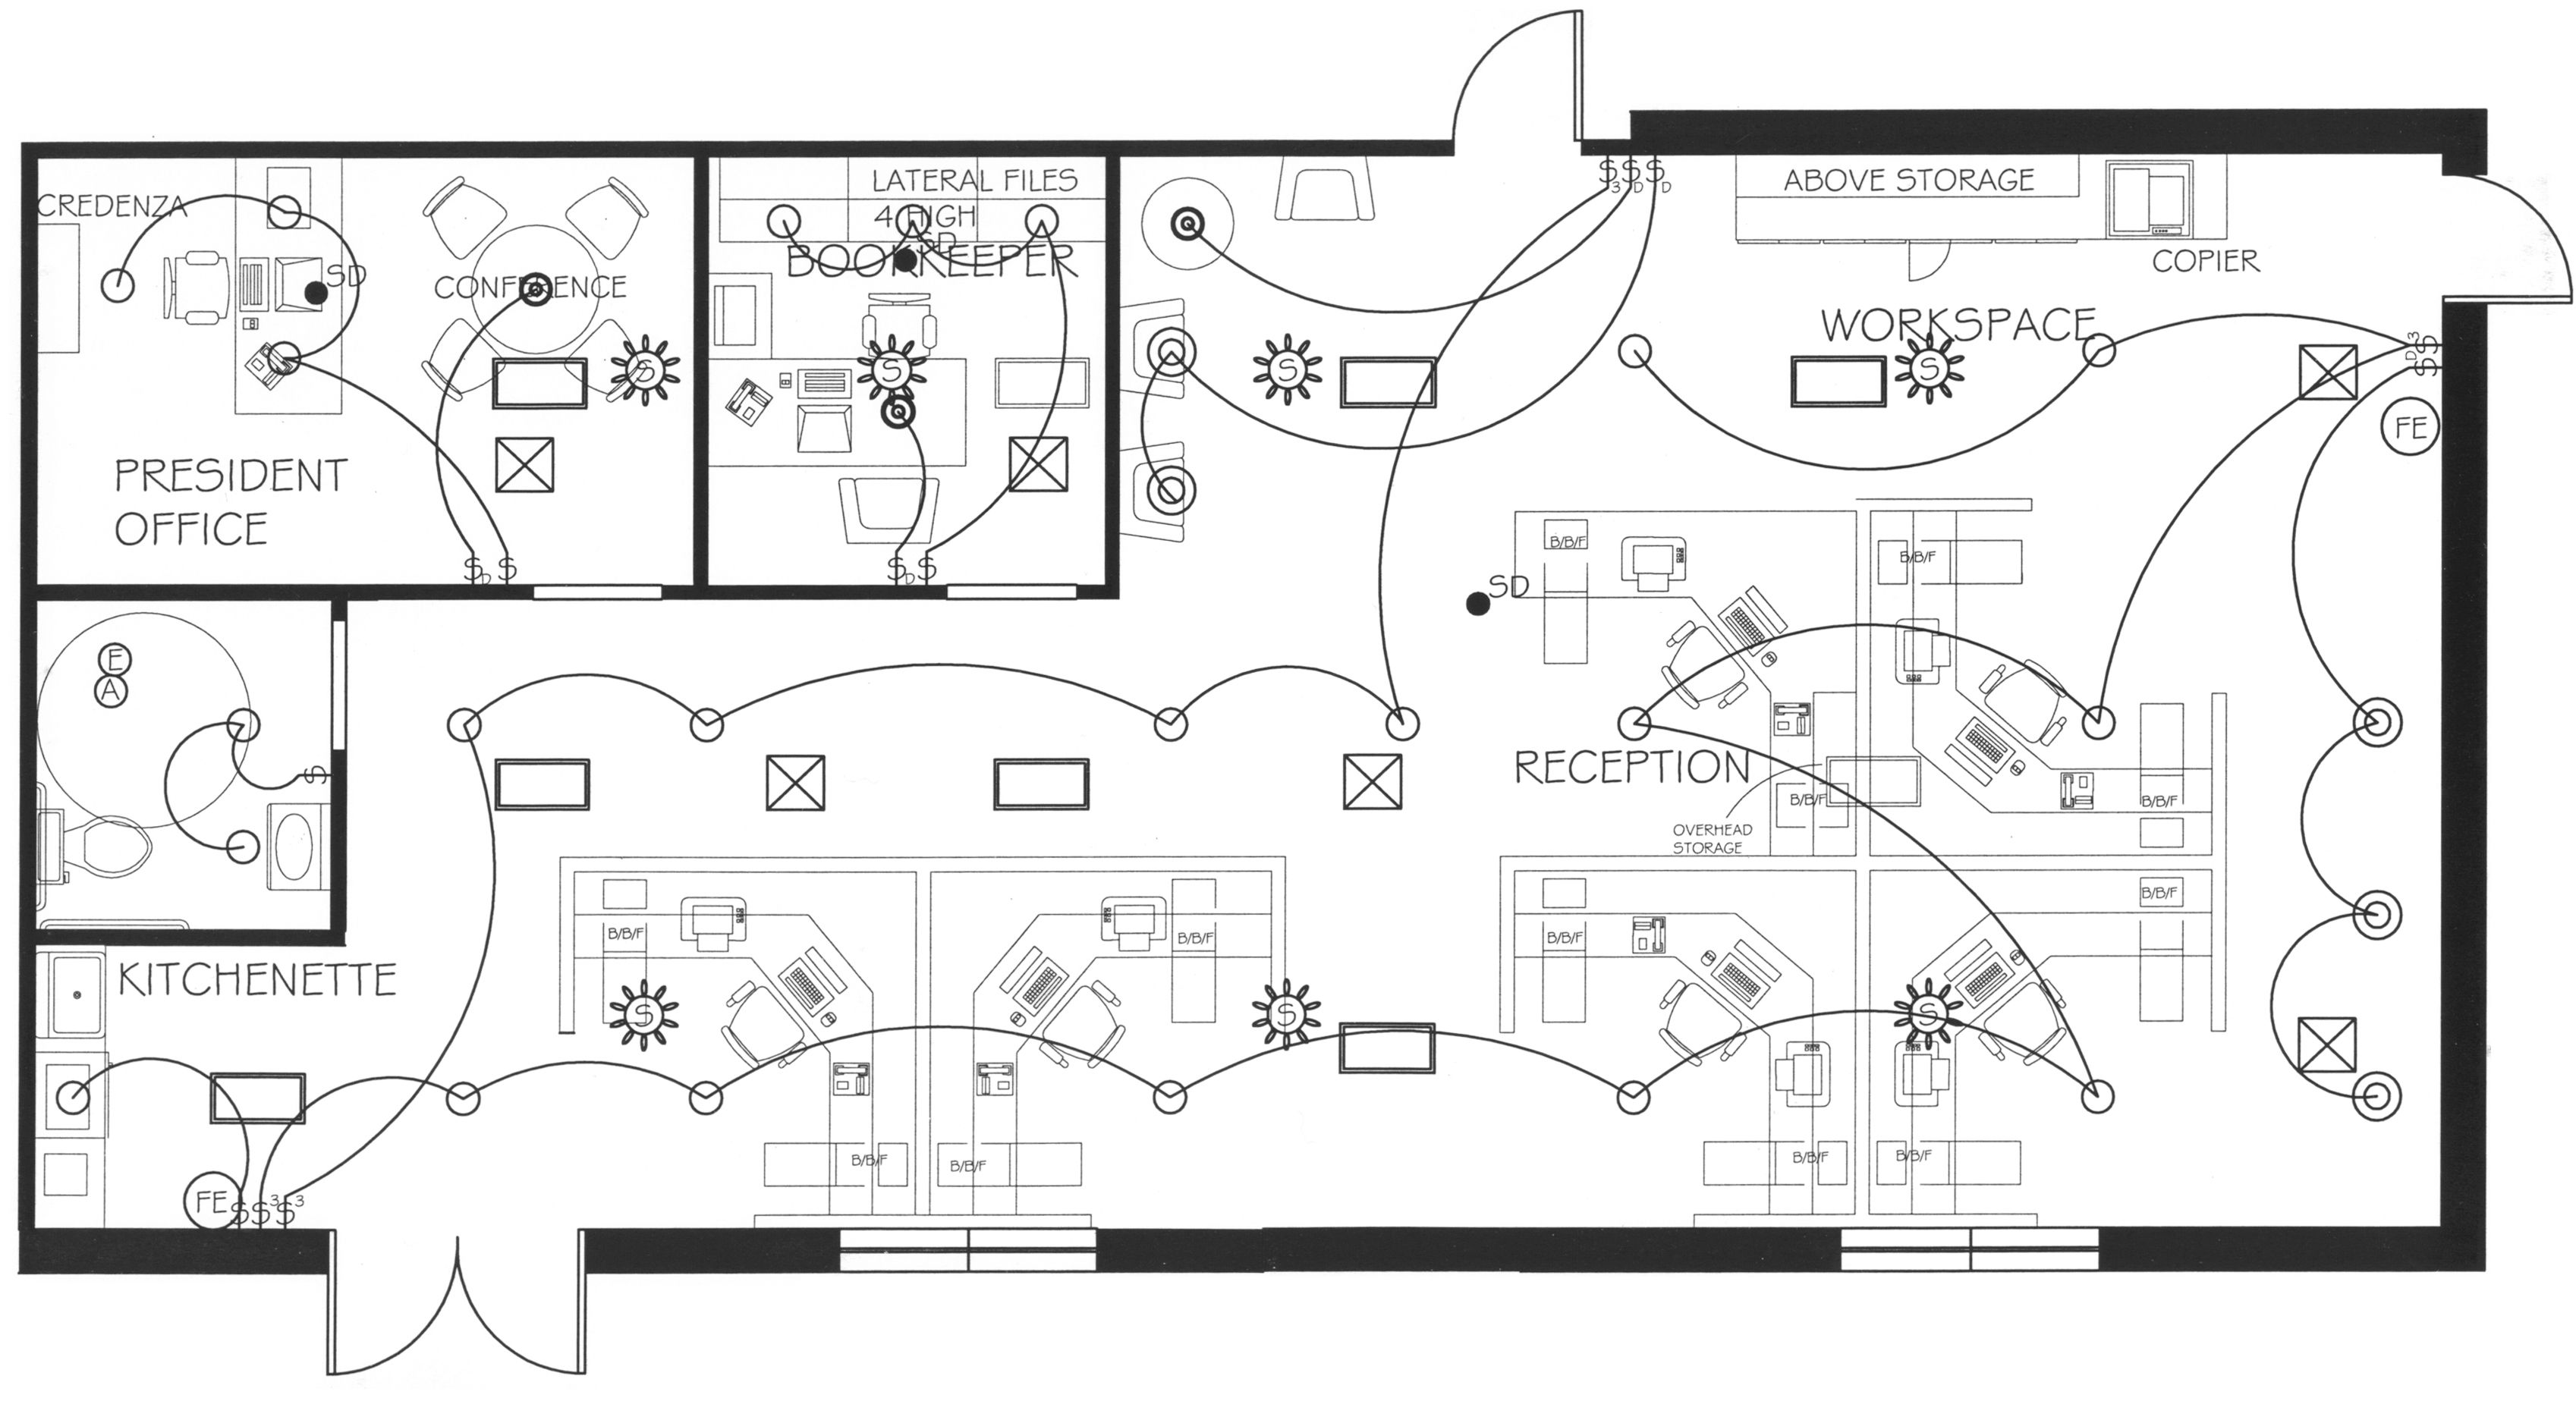 Commercial Lighting Pinterest How To Plan Electrical And Home Wiring Plans Floor Office Layout Lauren Duggers Portfolio Layouts